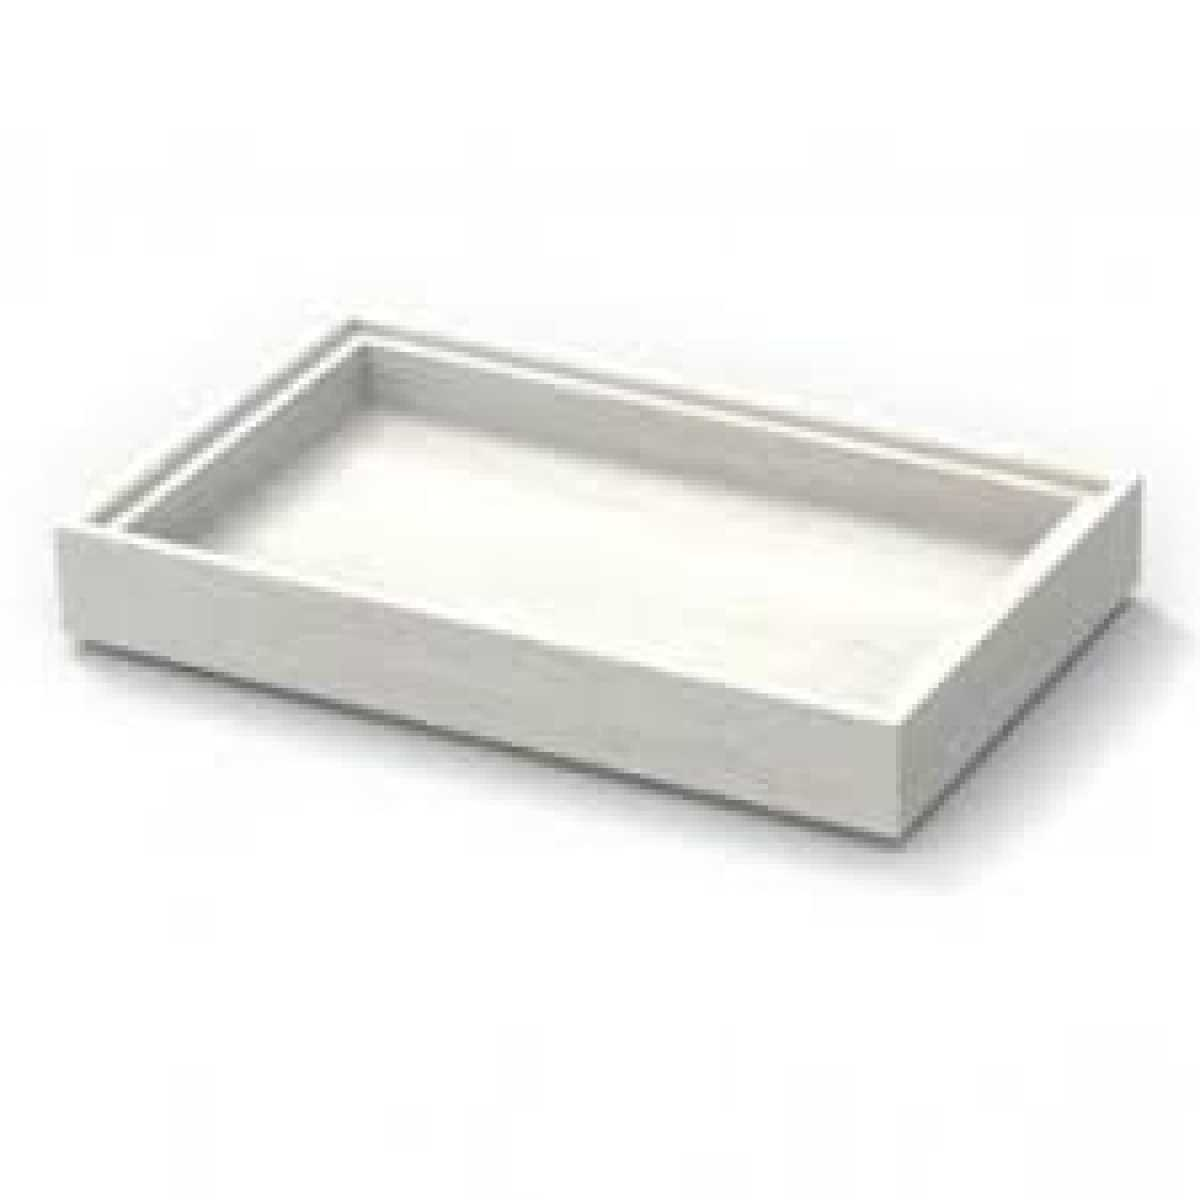 CRASTER Flow White-Washed Tray 2.4 - Uzun